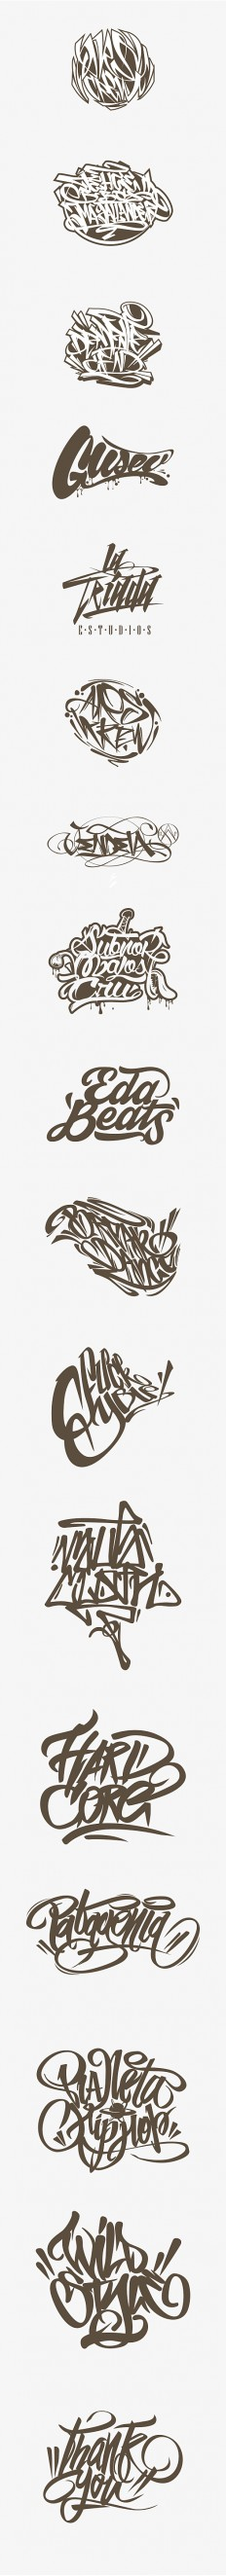 Calligraffiti - Lettering by Jorge Canicura on Inspirationde